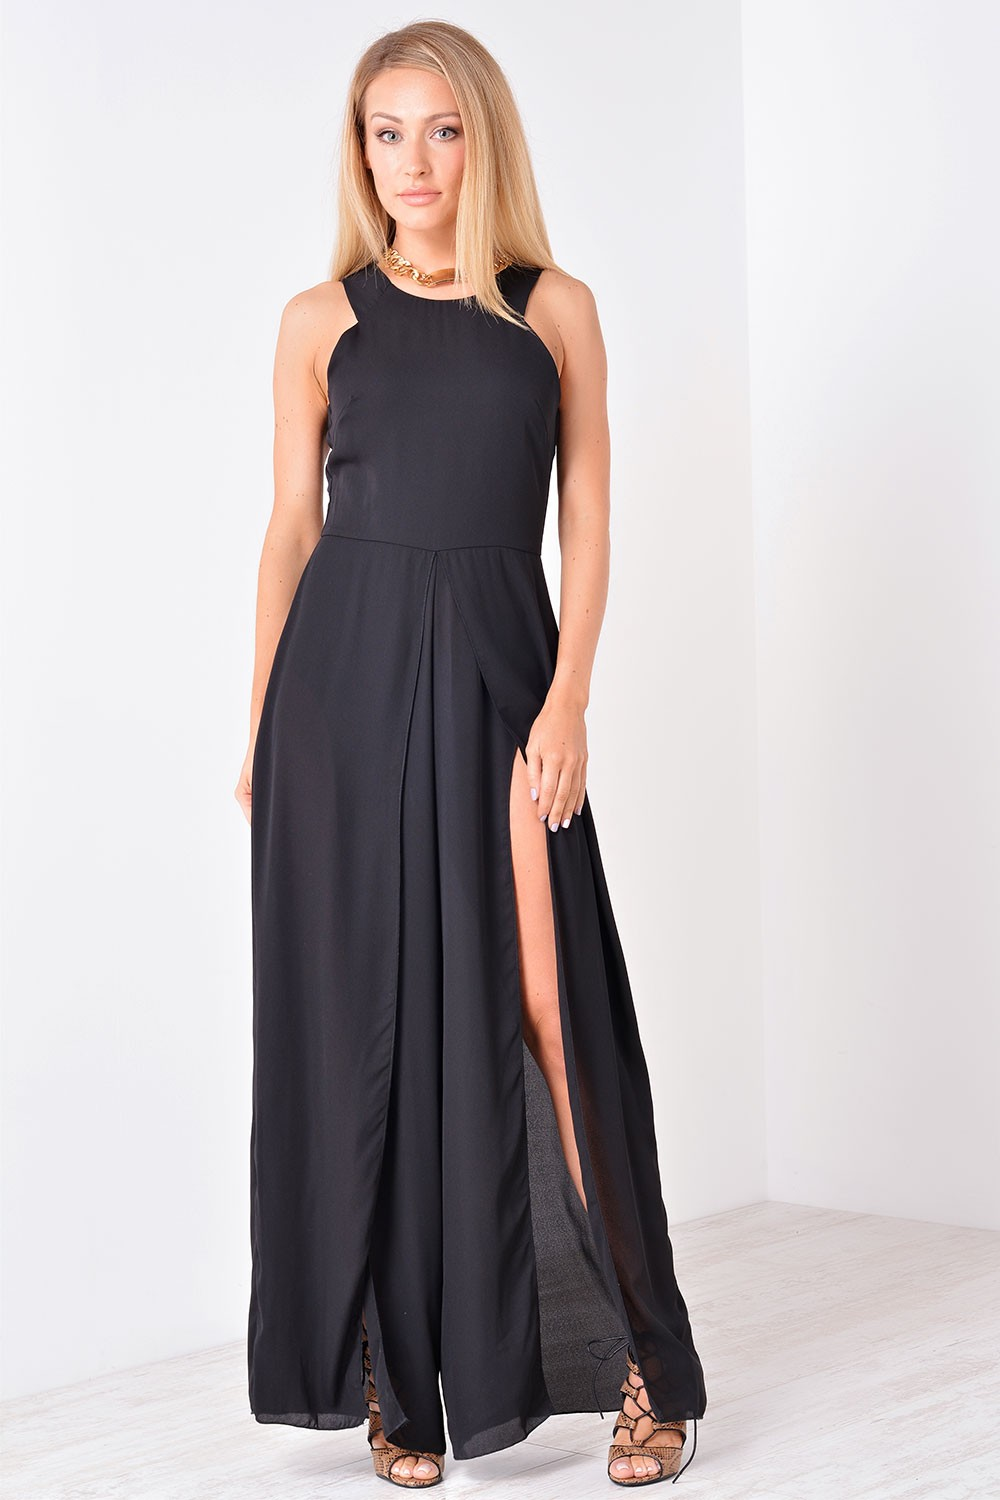 AX Paris Karina Split Wide Leg Jumpsuit in Black